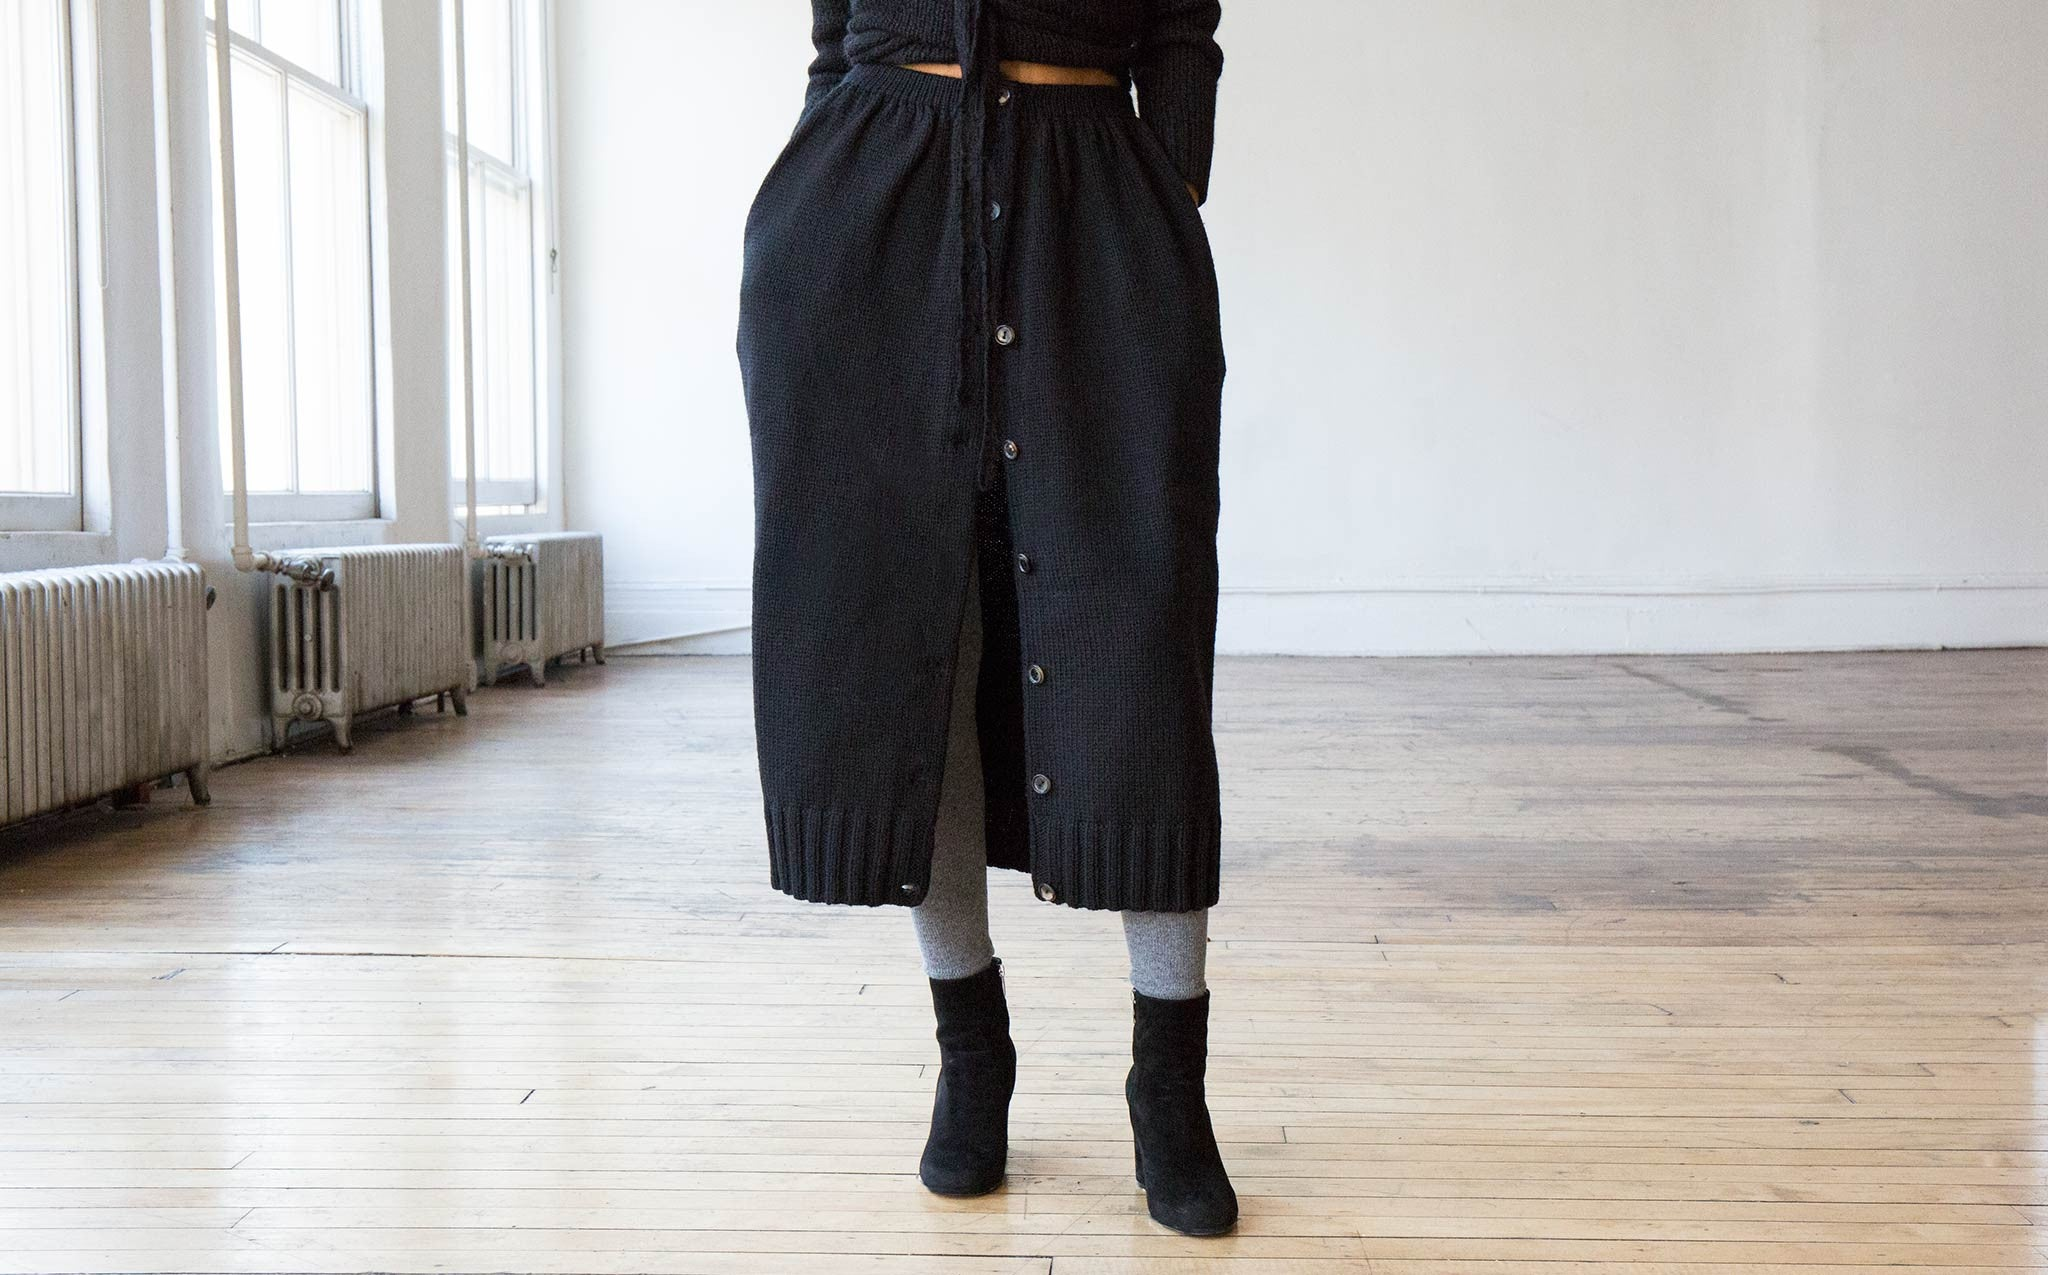 A Détacher Celina Skirt kindred black